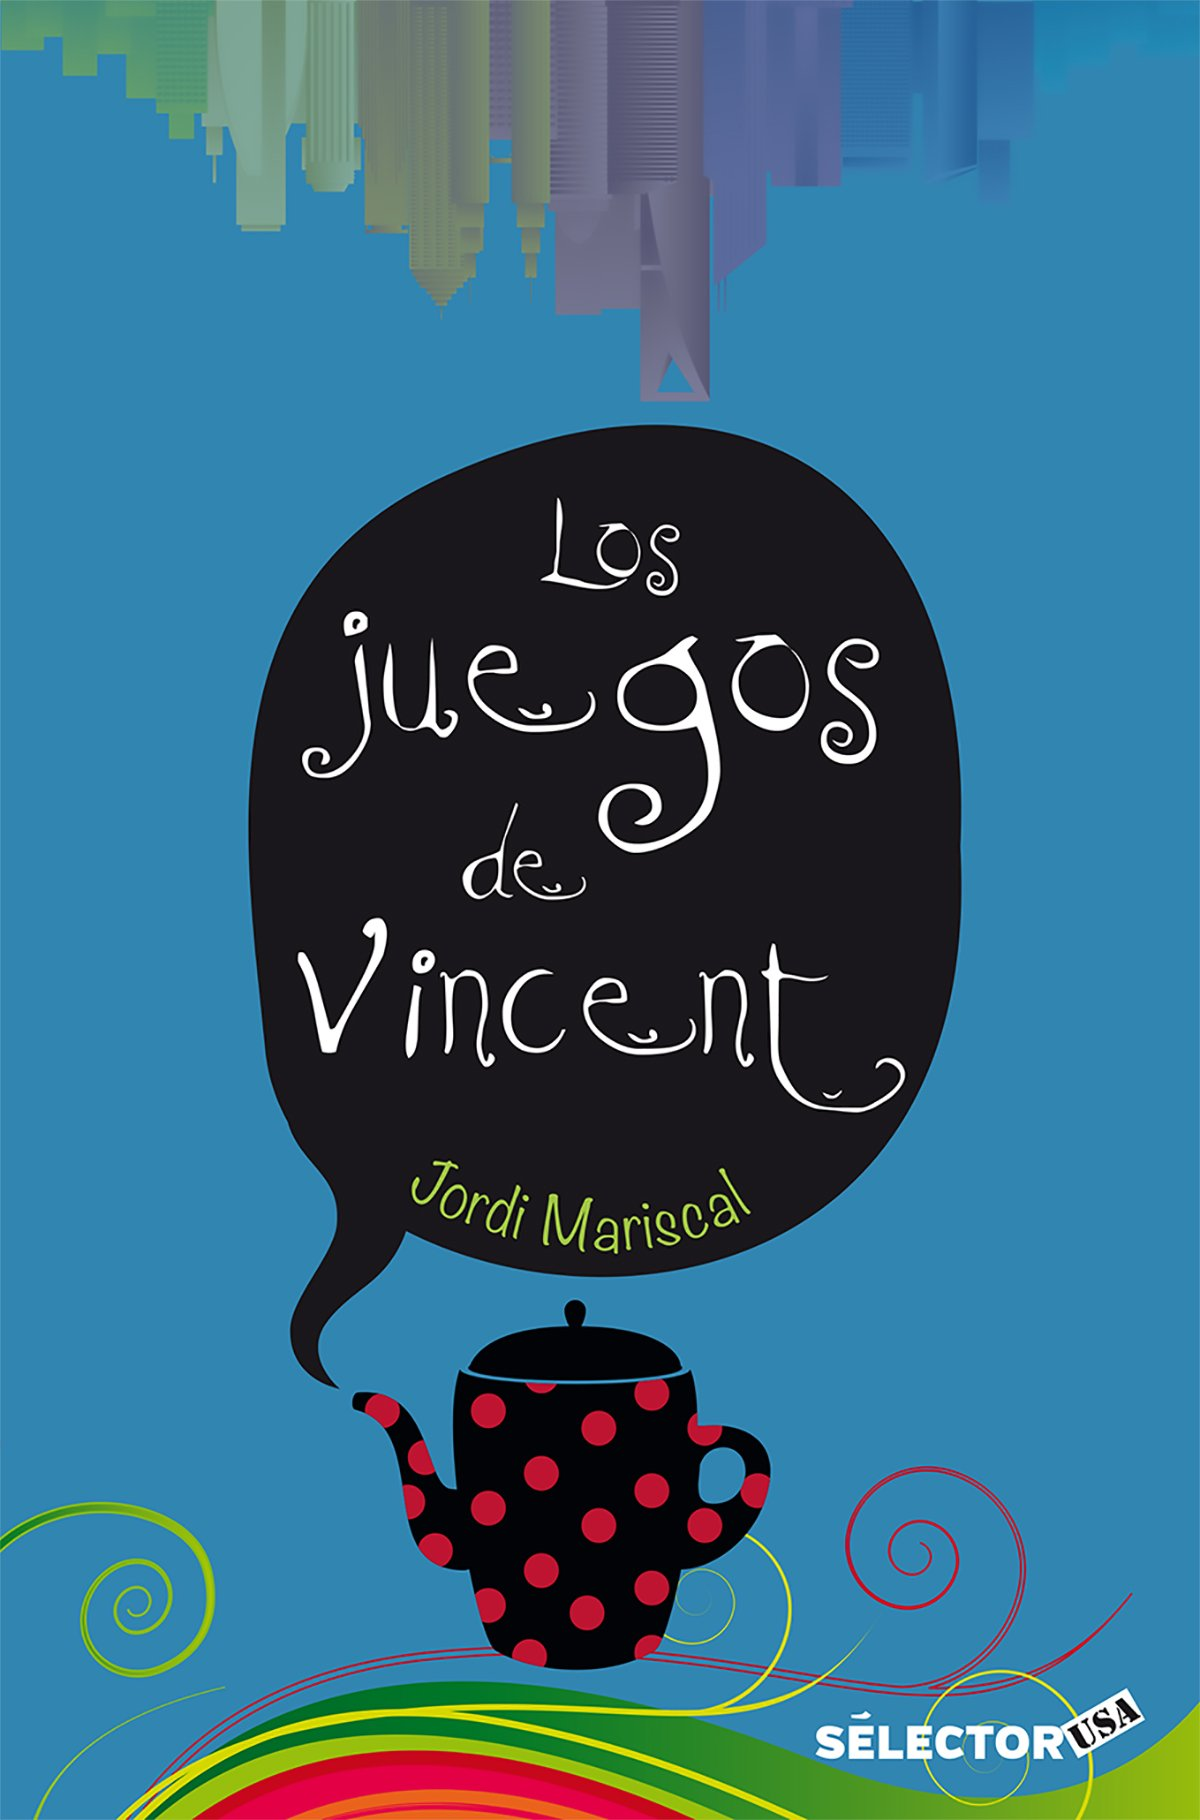 Juegos de Vincent, Los / The games of Vincent (Spanish Edition) (Spanish) Paperback – February 28, 2017